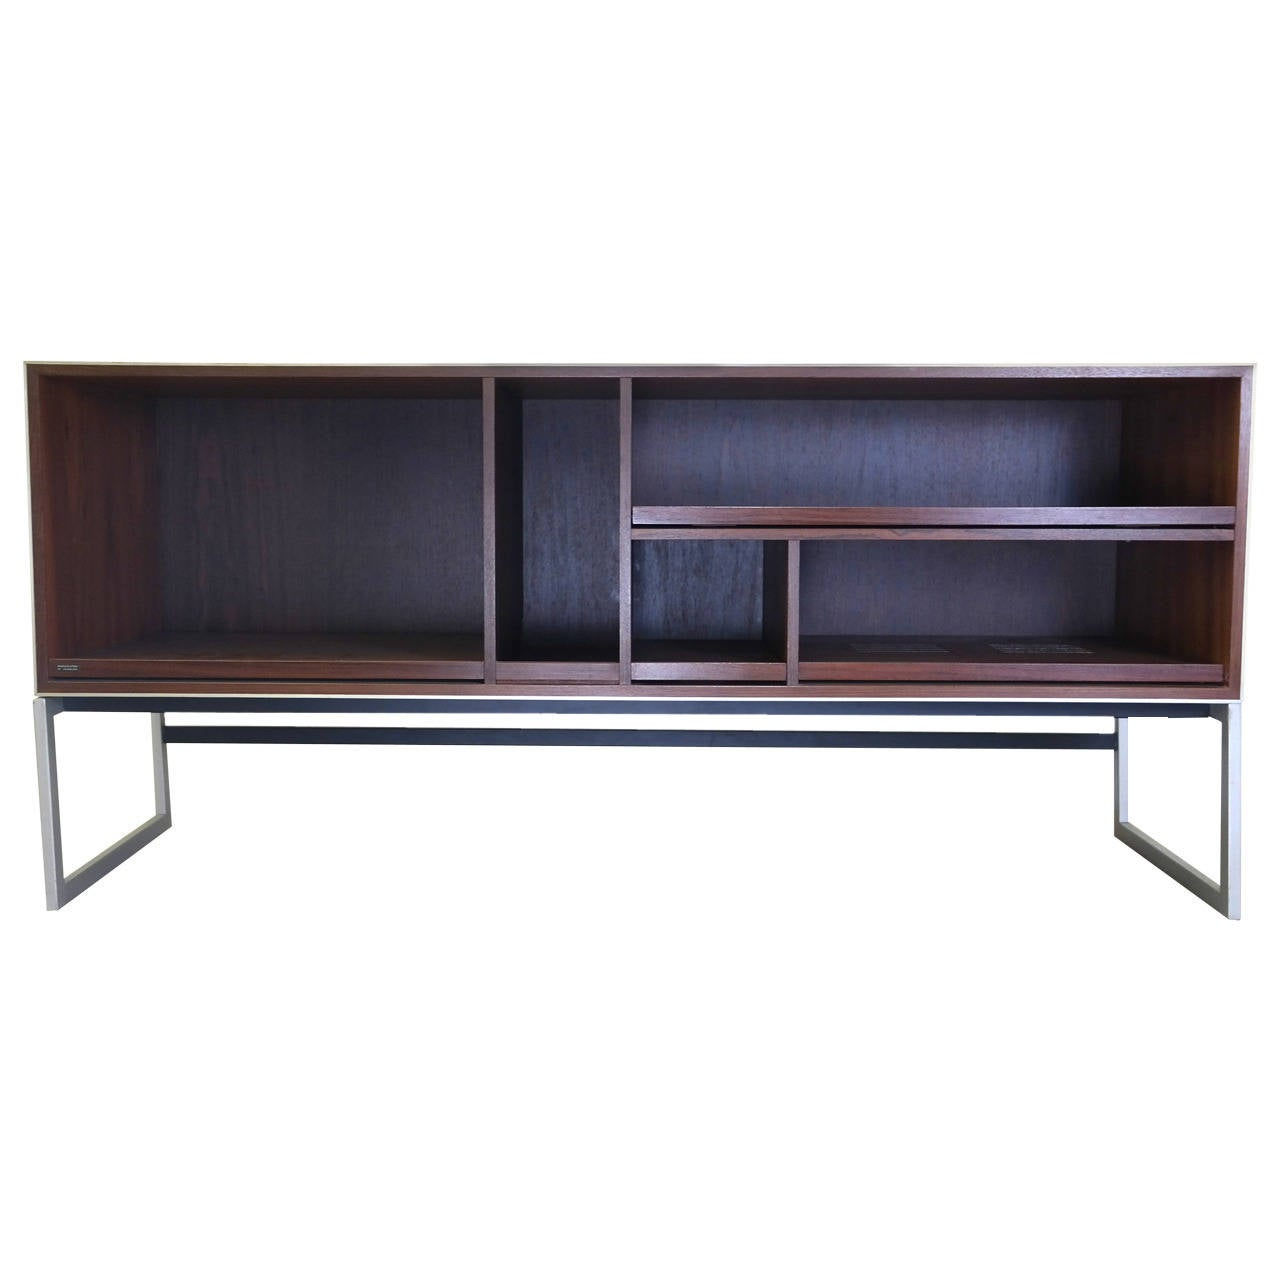 Bang and Olufsen Credenza Stereo Cabinet in Rosewood at